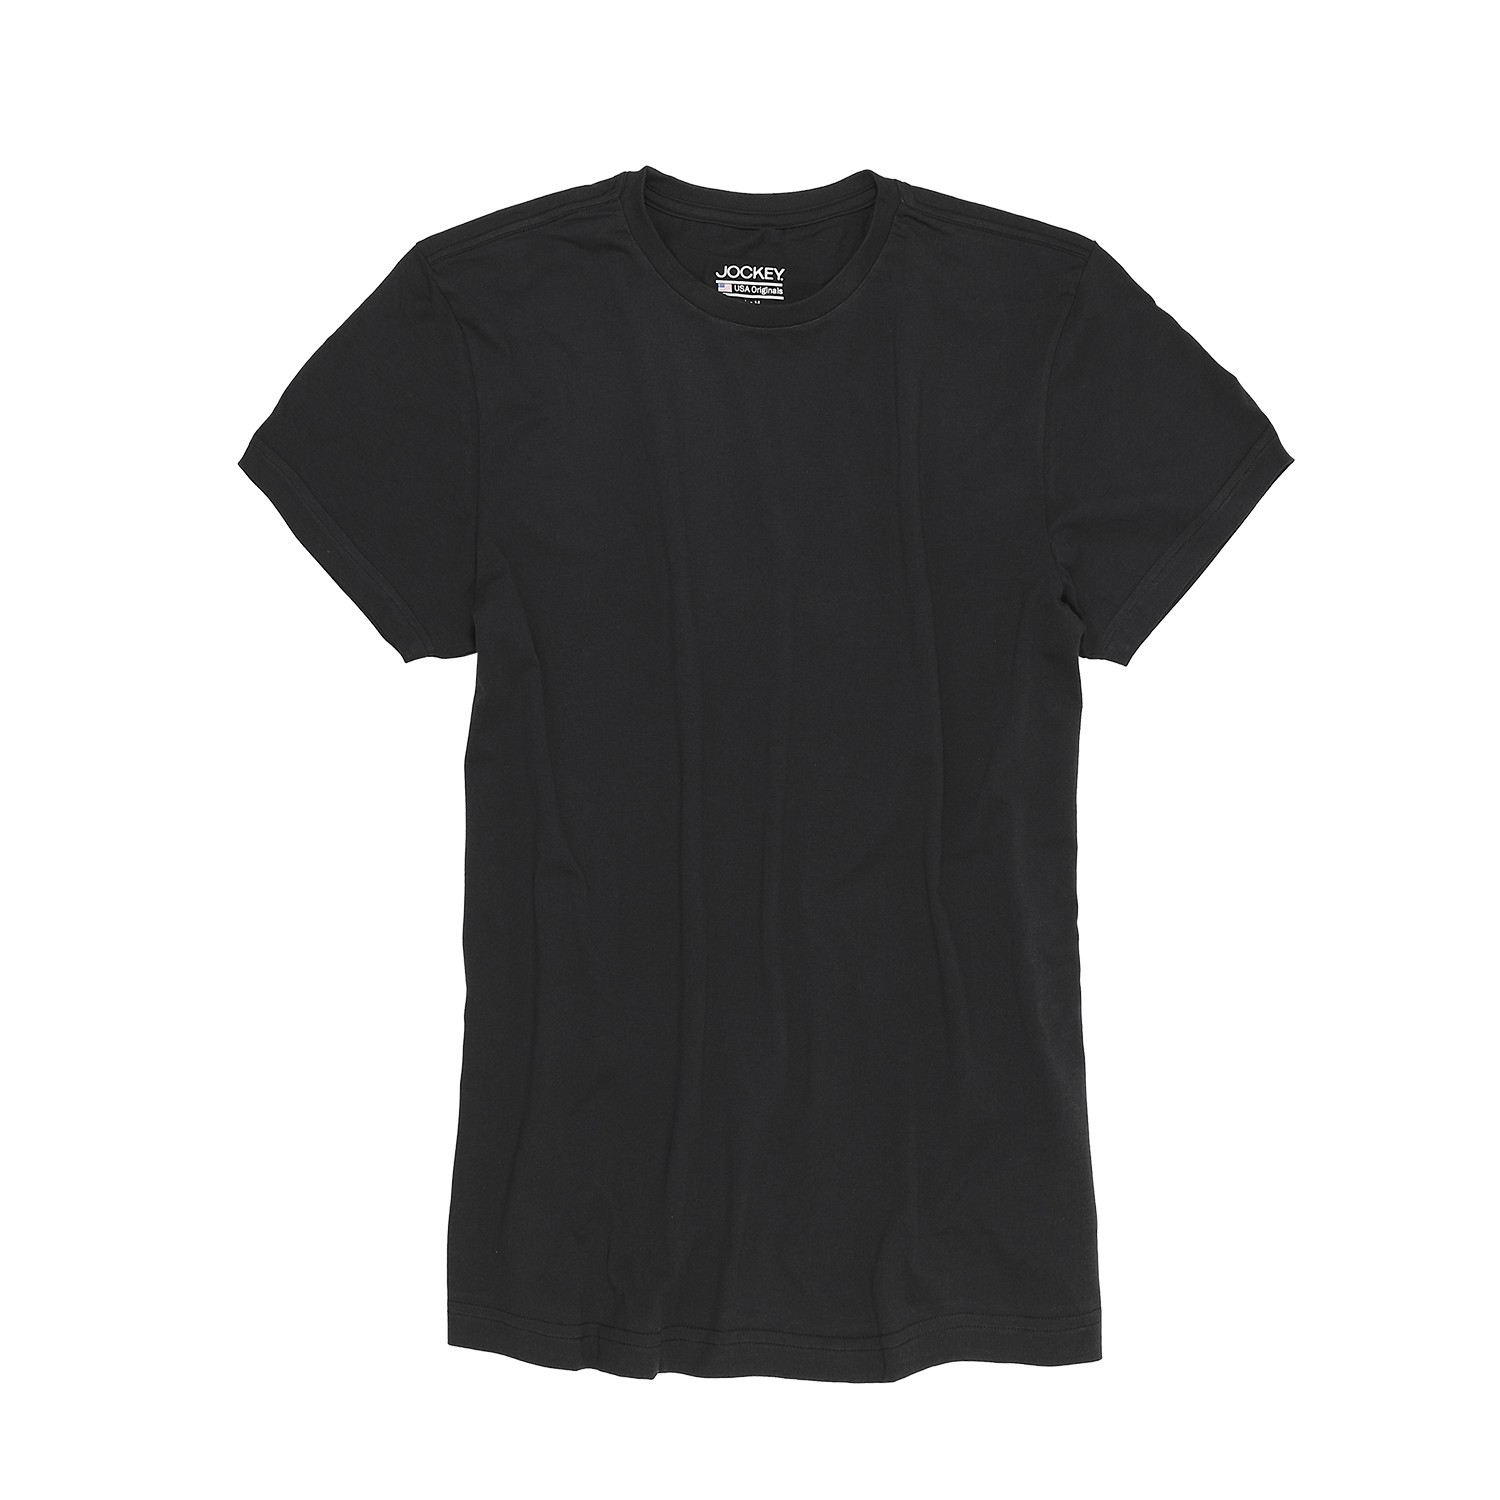 Detail Image to T-shirt from Jockey in oversize until 6XL, black